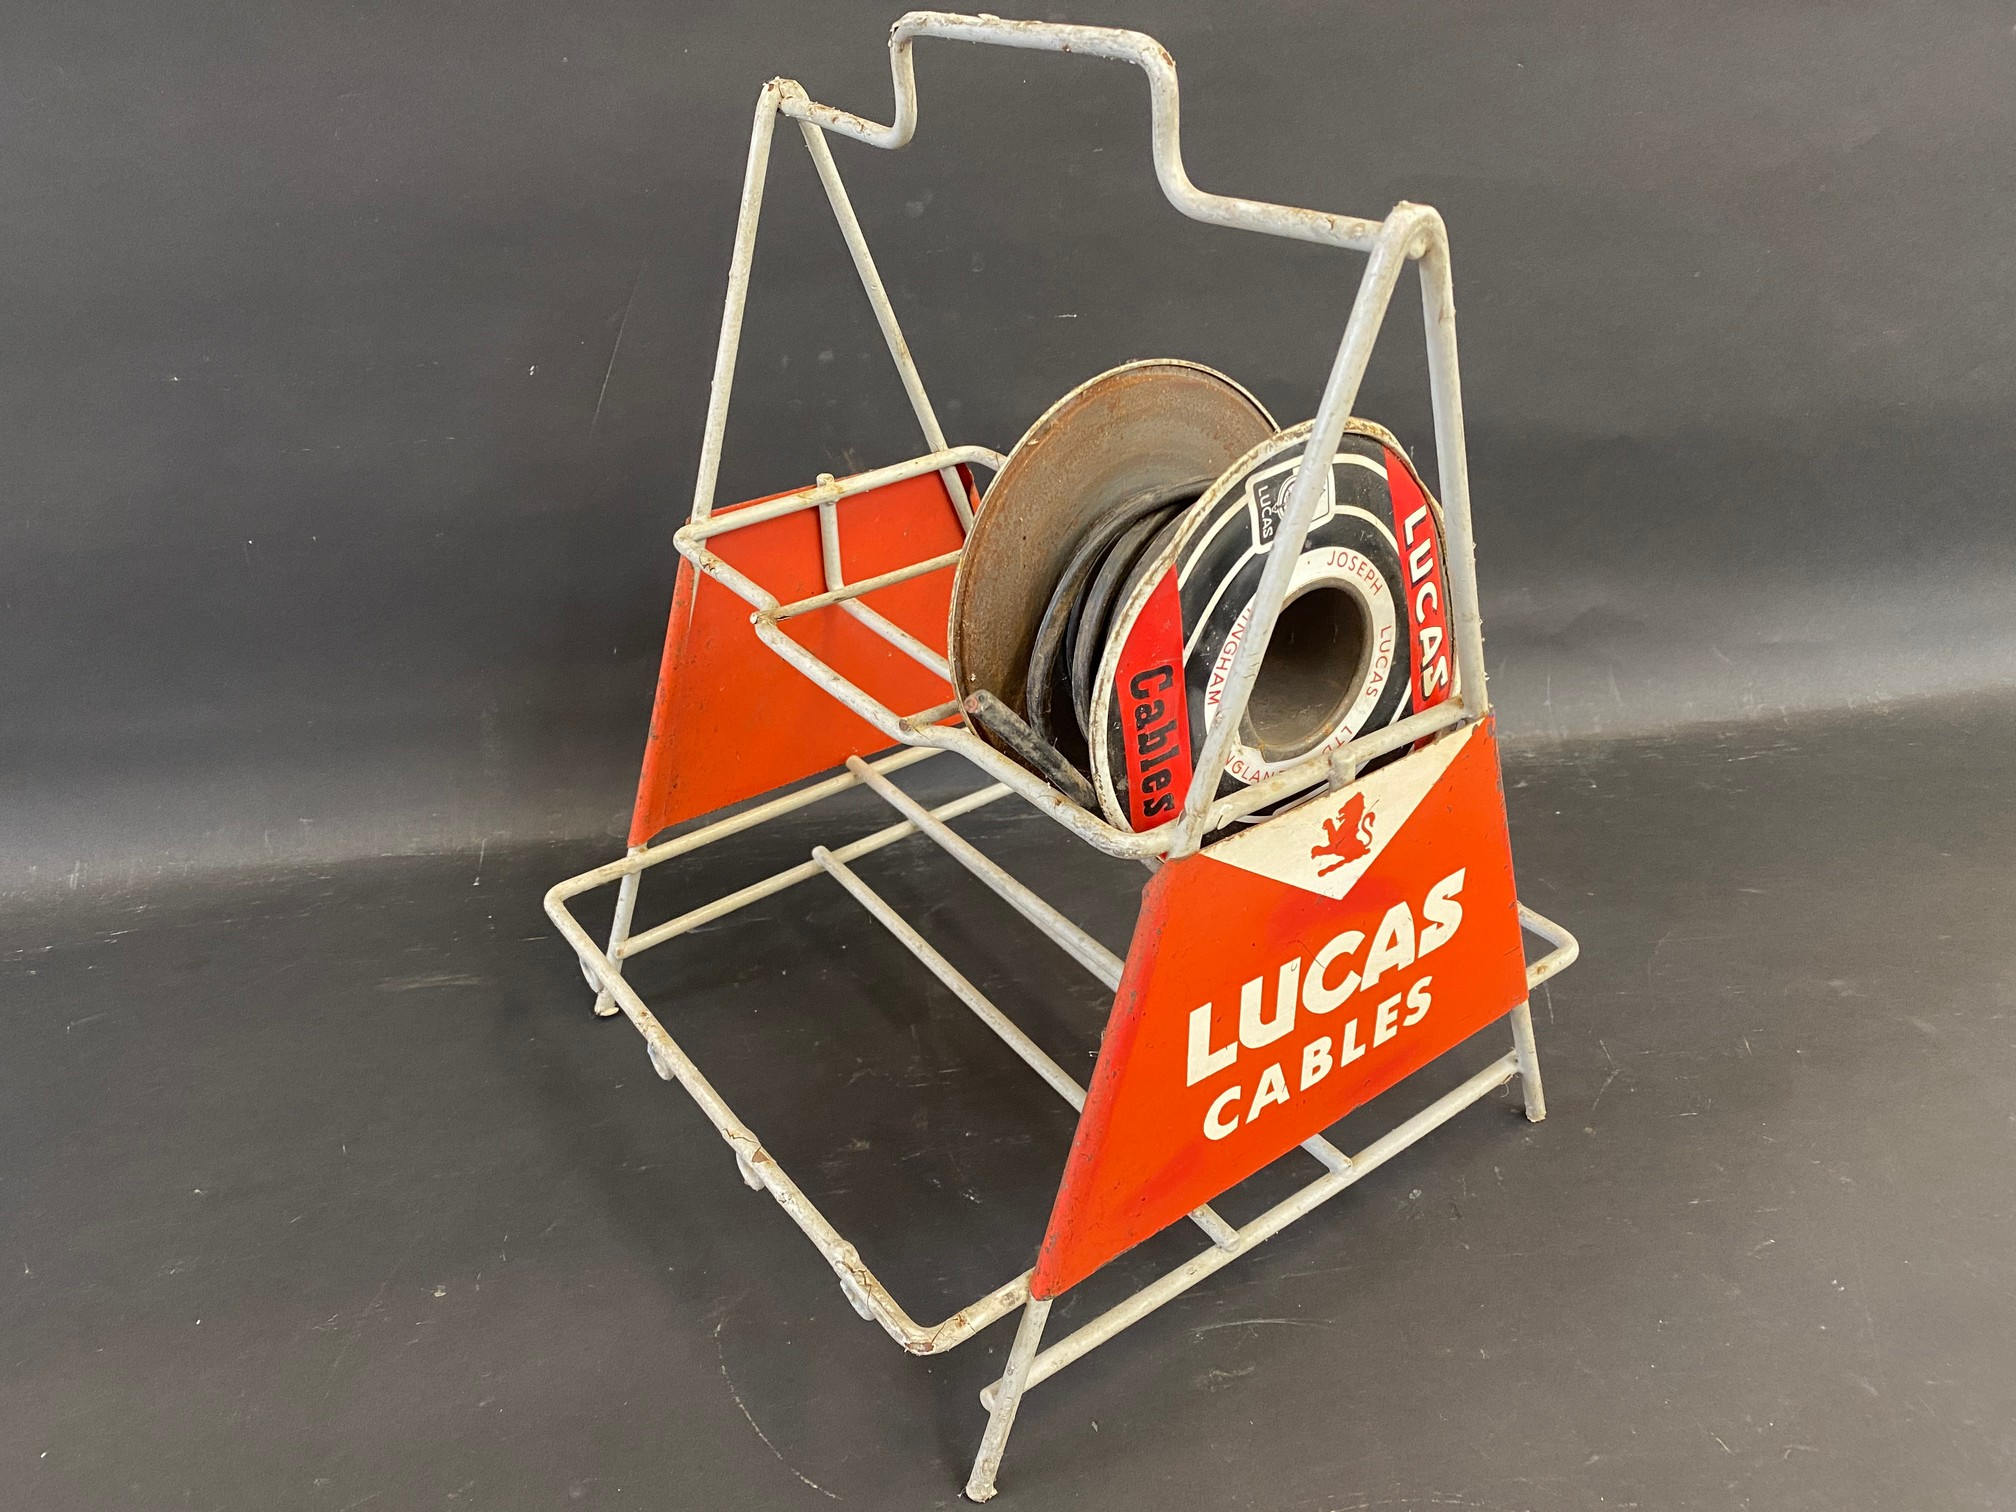 A Lucas Cables garage forecourt rack. - Image 2 of 2